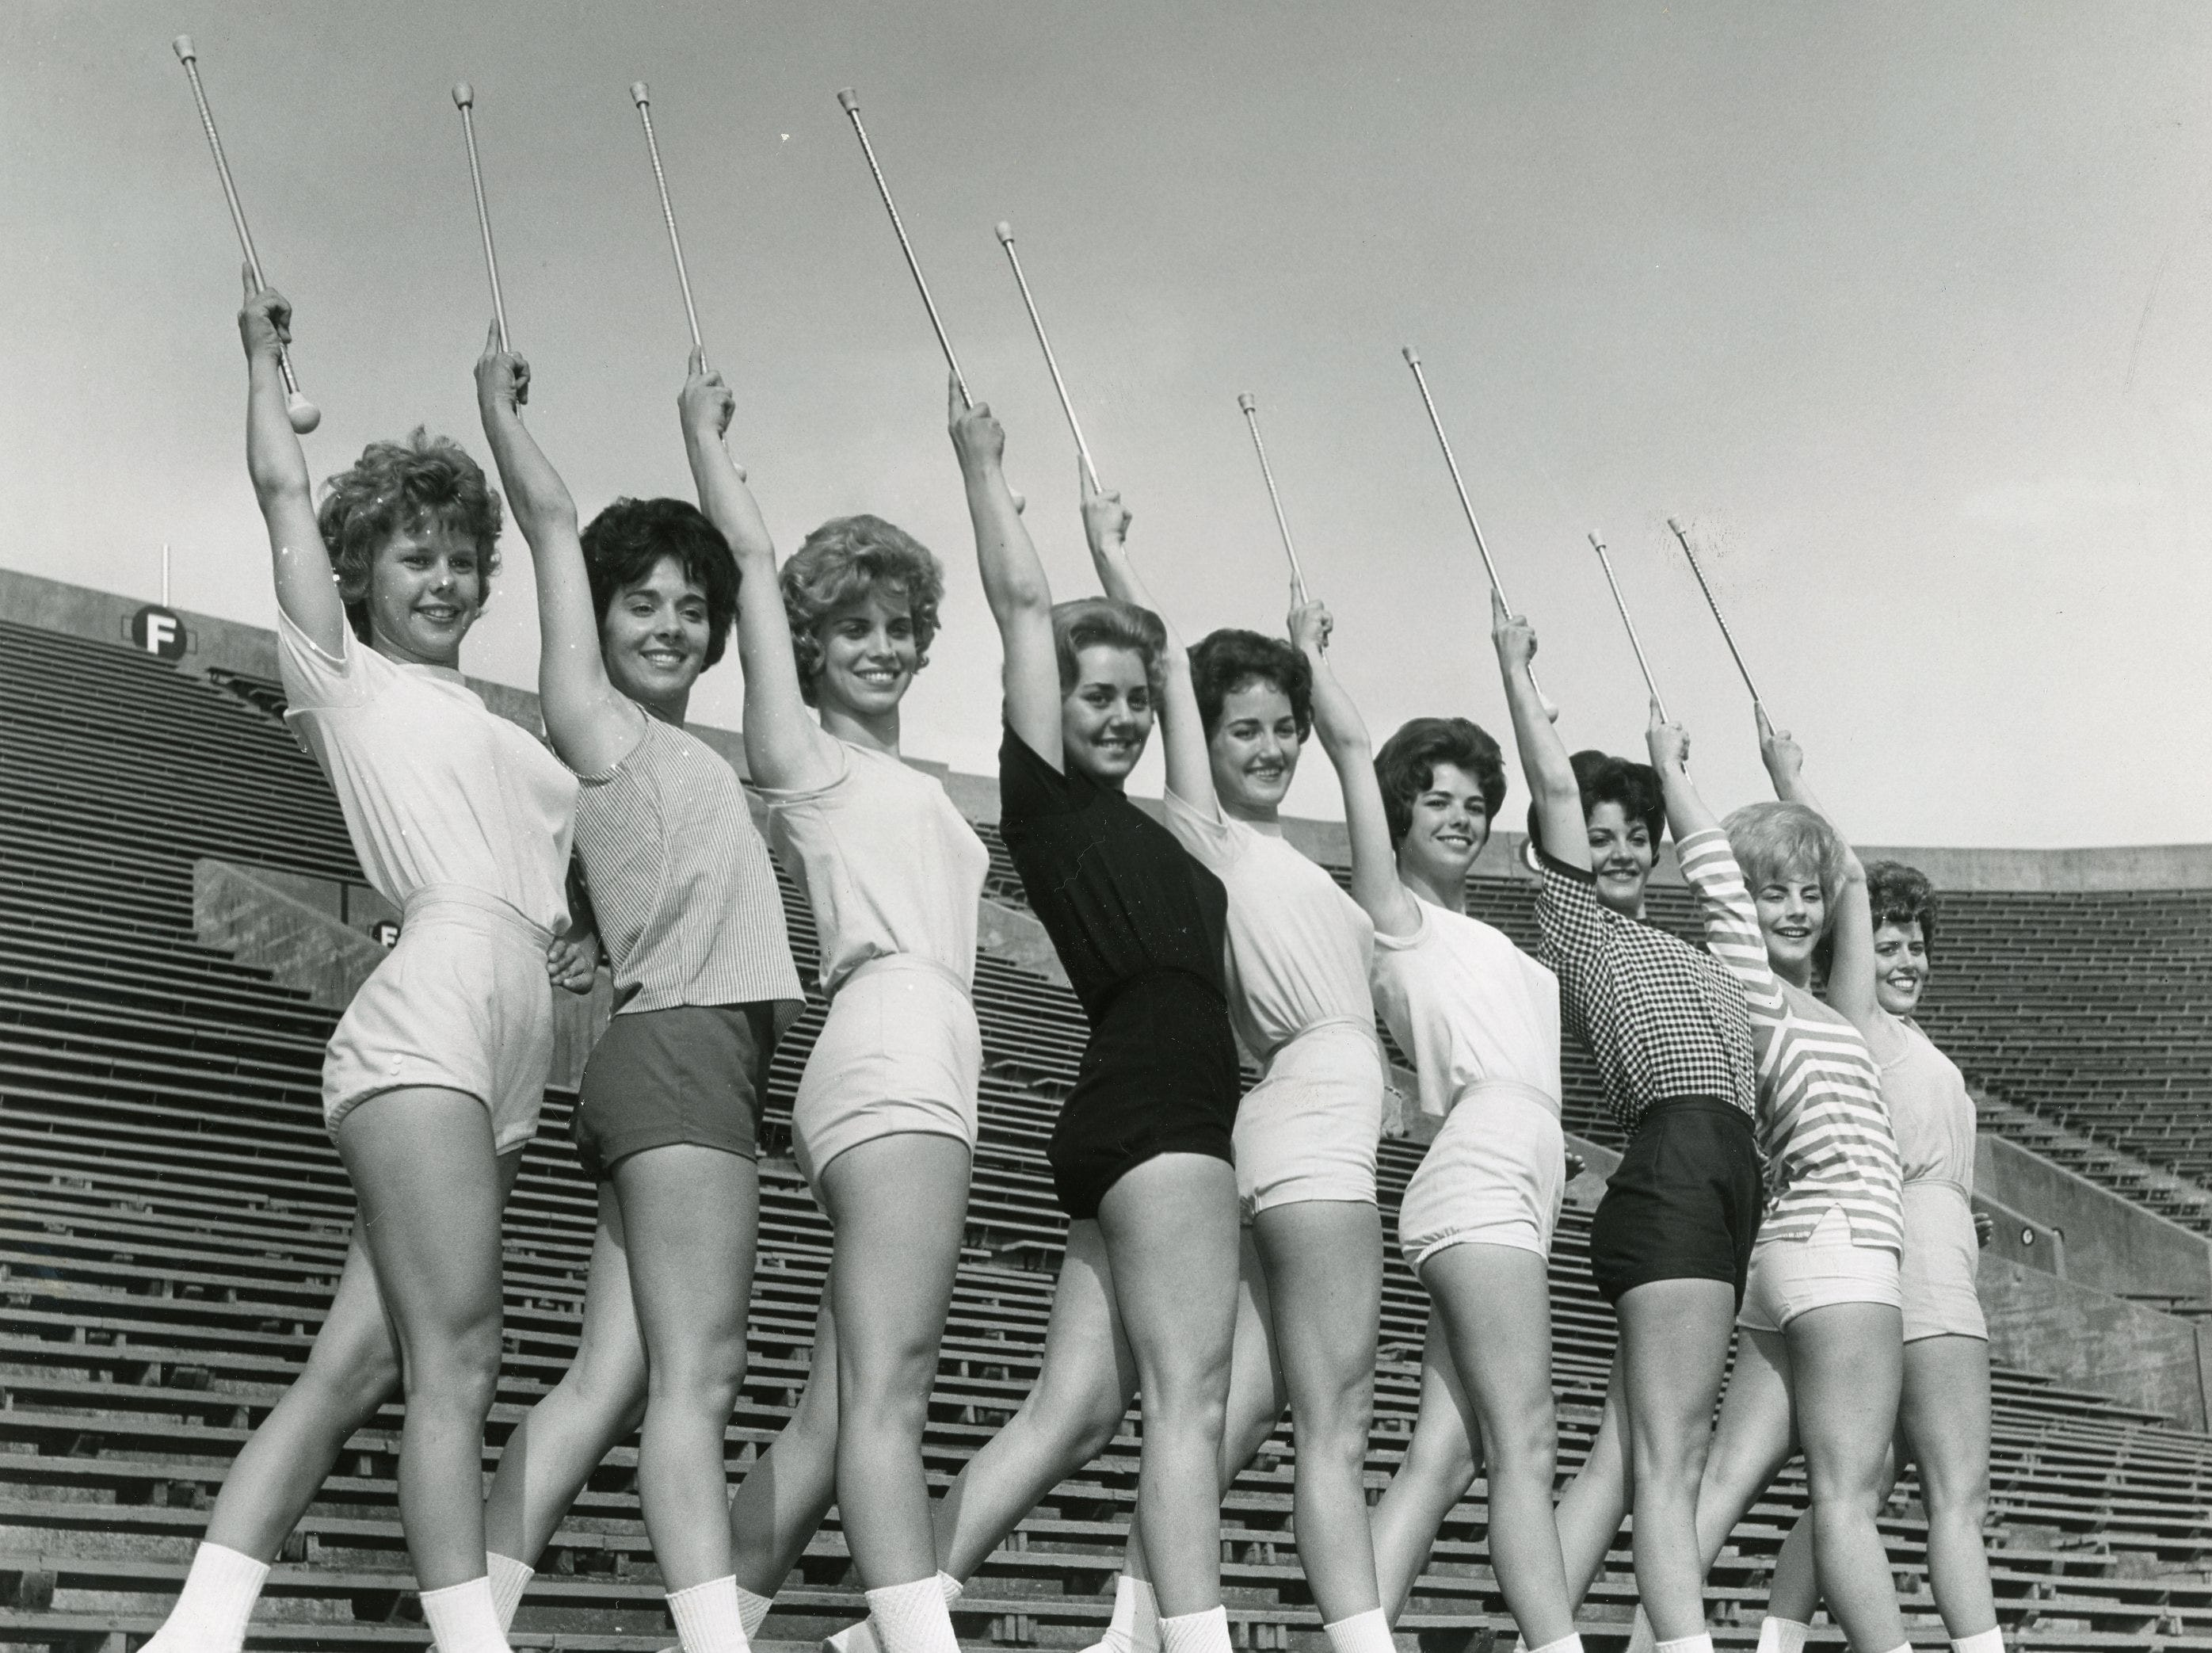 """UT """"High Steppers"""", May, 1962: from left included Mary Nicholon, Marcia Austin, Judy Barton, Judy Bailey, Claudette Riley, Bette Carlson, Betty Sue Little, DeAnna Smith and Marlene Bagwell."""